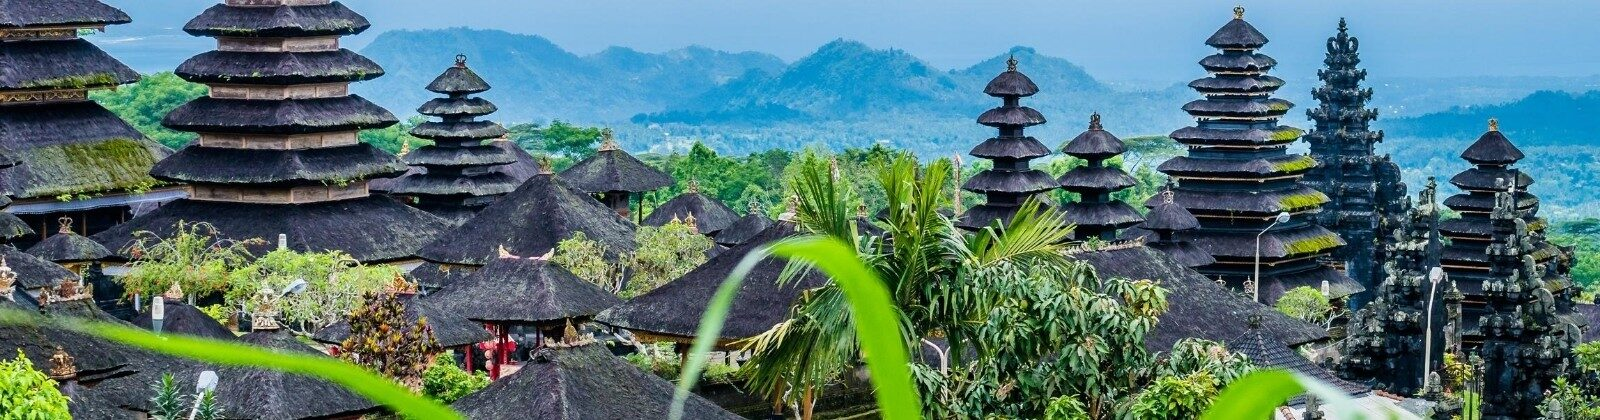 bali featured image temples